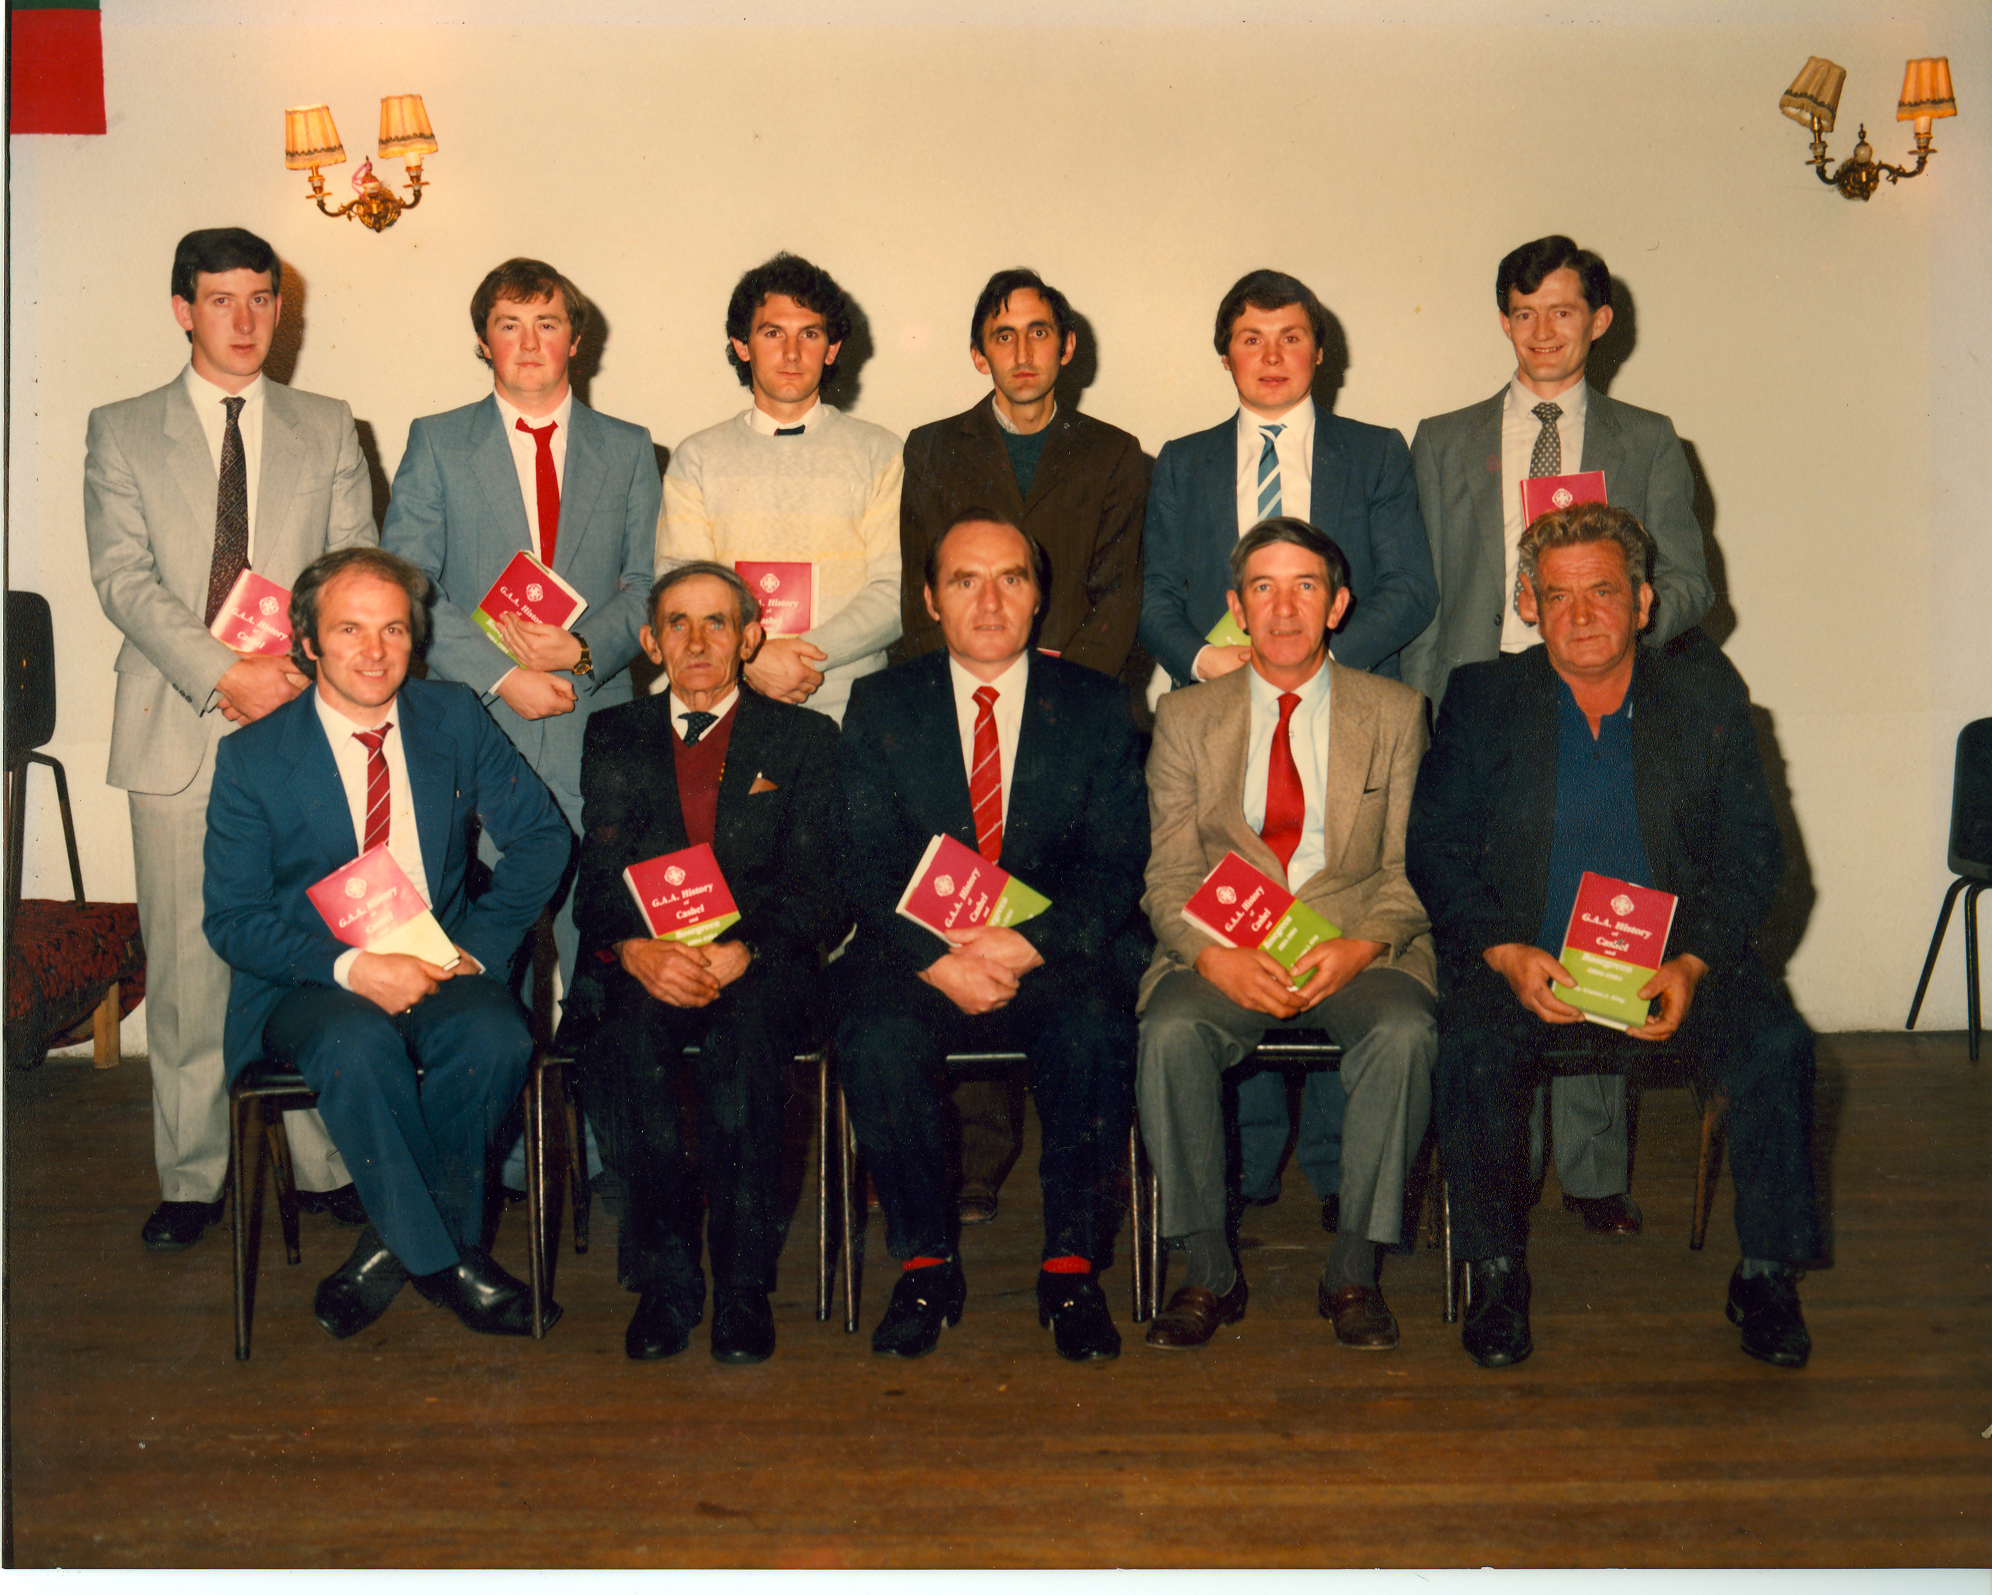 1985: G.A.A. History of Cashel & Rosegreen 1884-1984 Book Launch